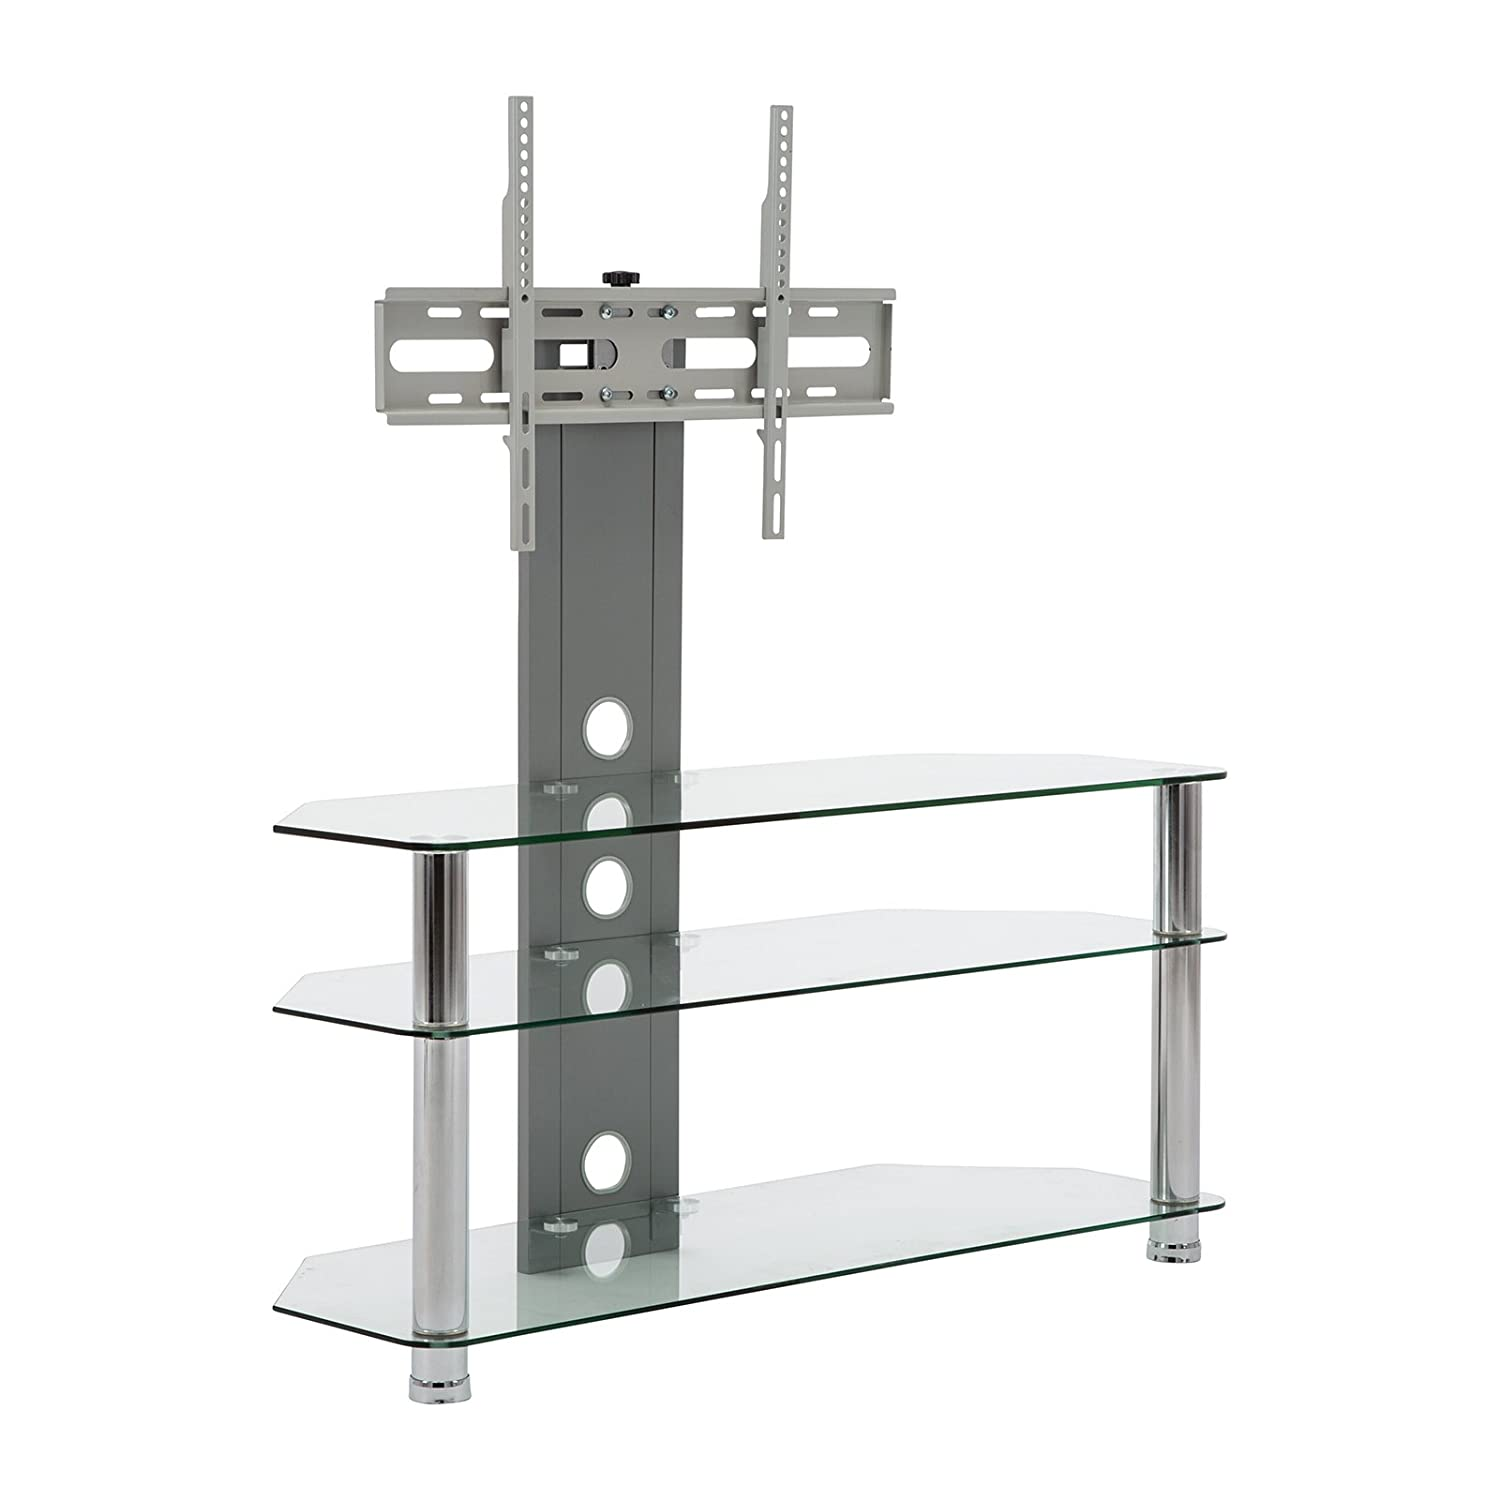 Clear Glass Floor TV Stand With Mount – Fits Flat Panel LED LCD Plasma TV s From 30- 60 Inch – Sturdy, Easy To Assemble Aluminium Silver Finish Three Glass Shelves Cable Management